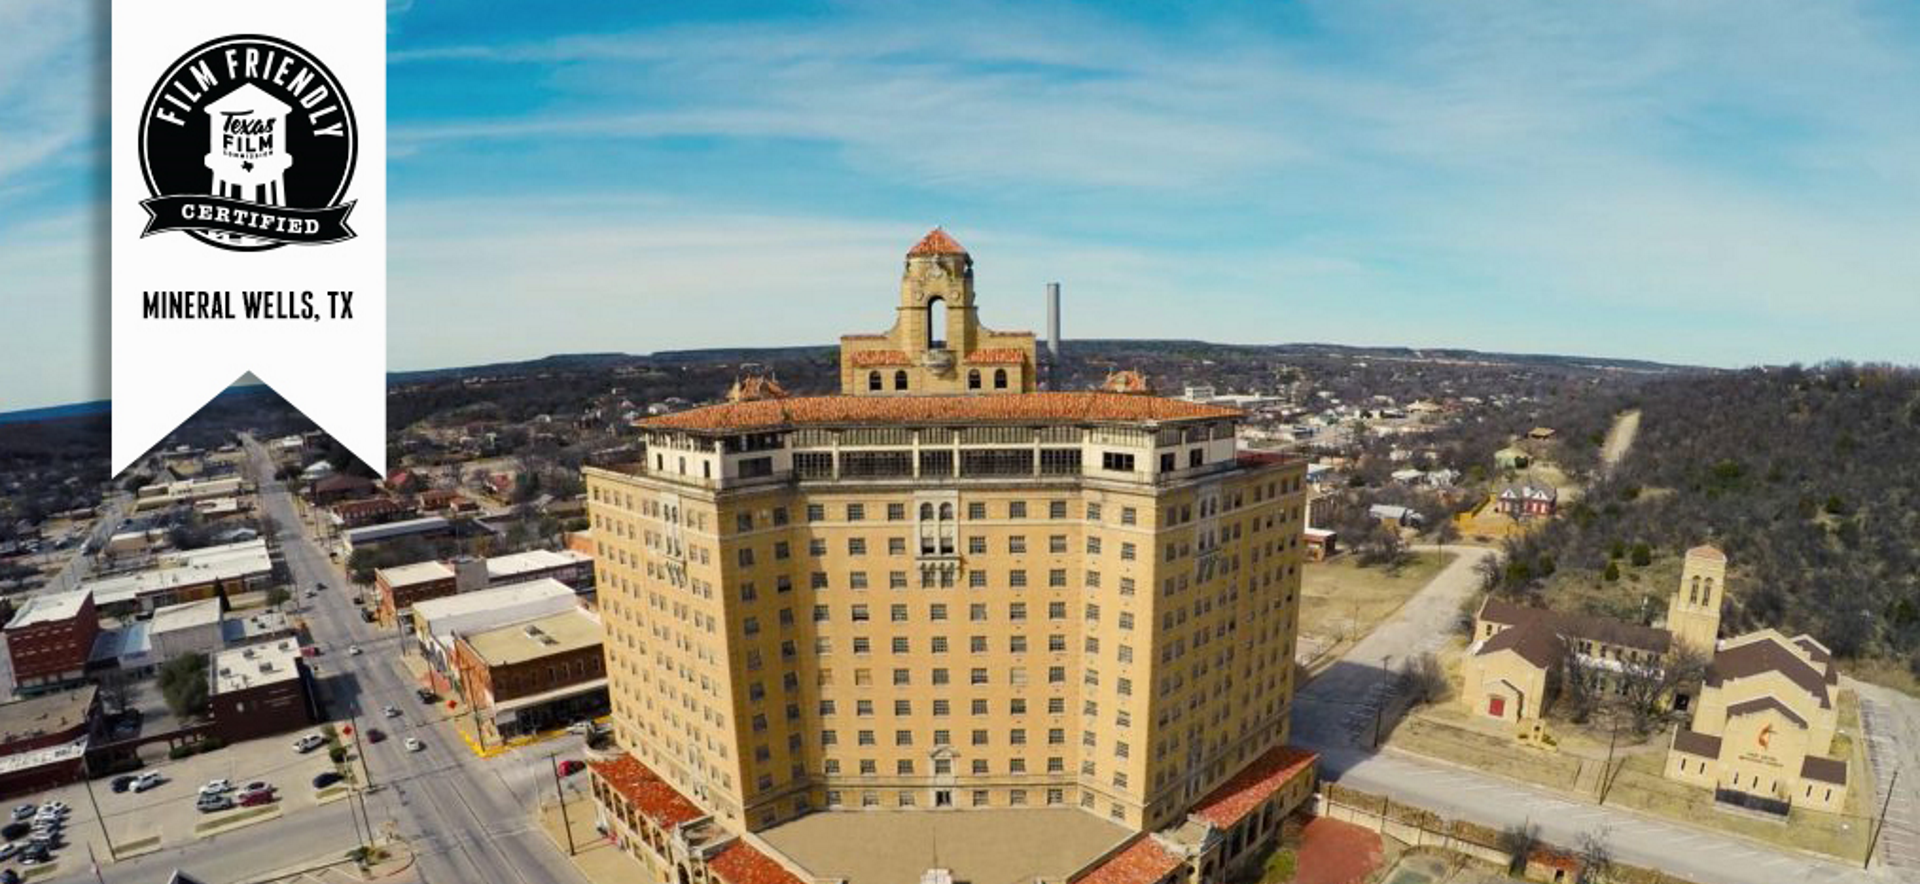 City of Mineral Wells, TX - Official Website   Official Website